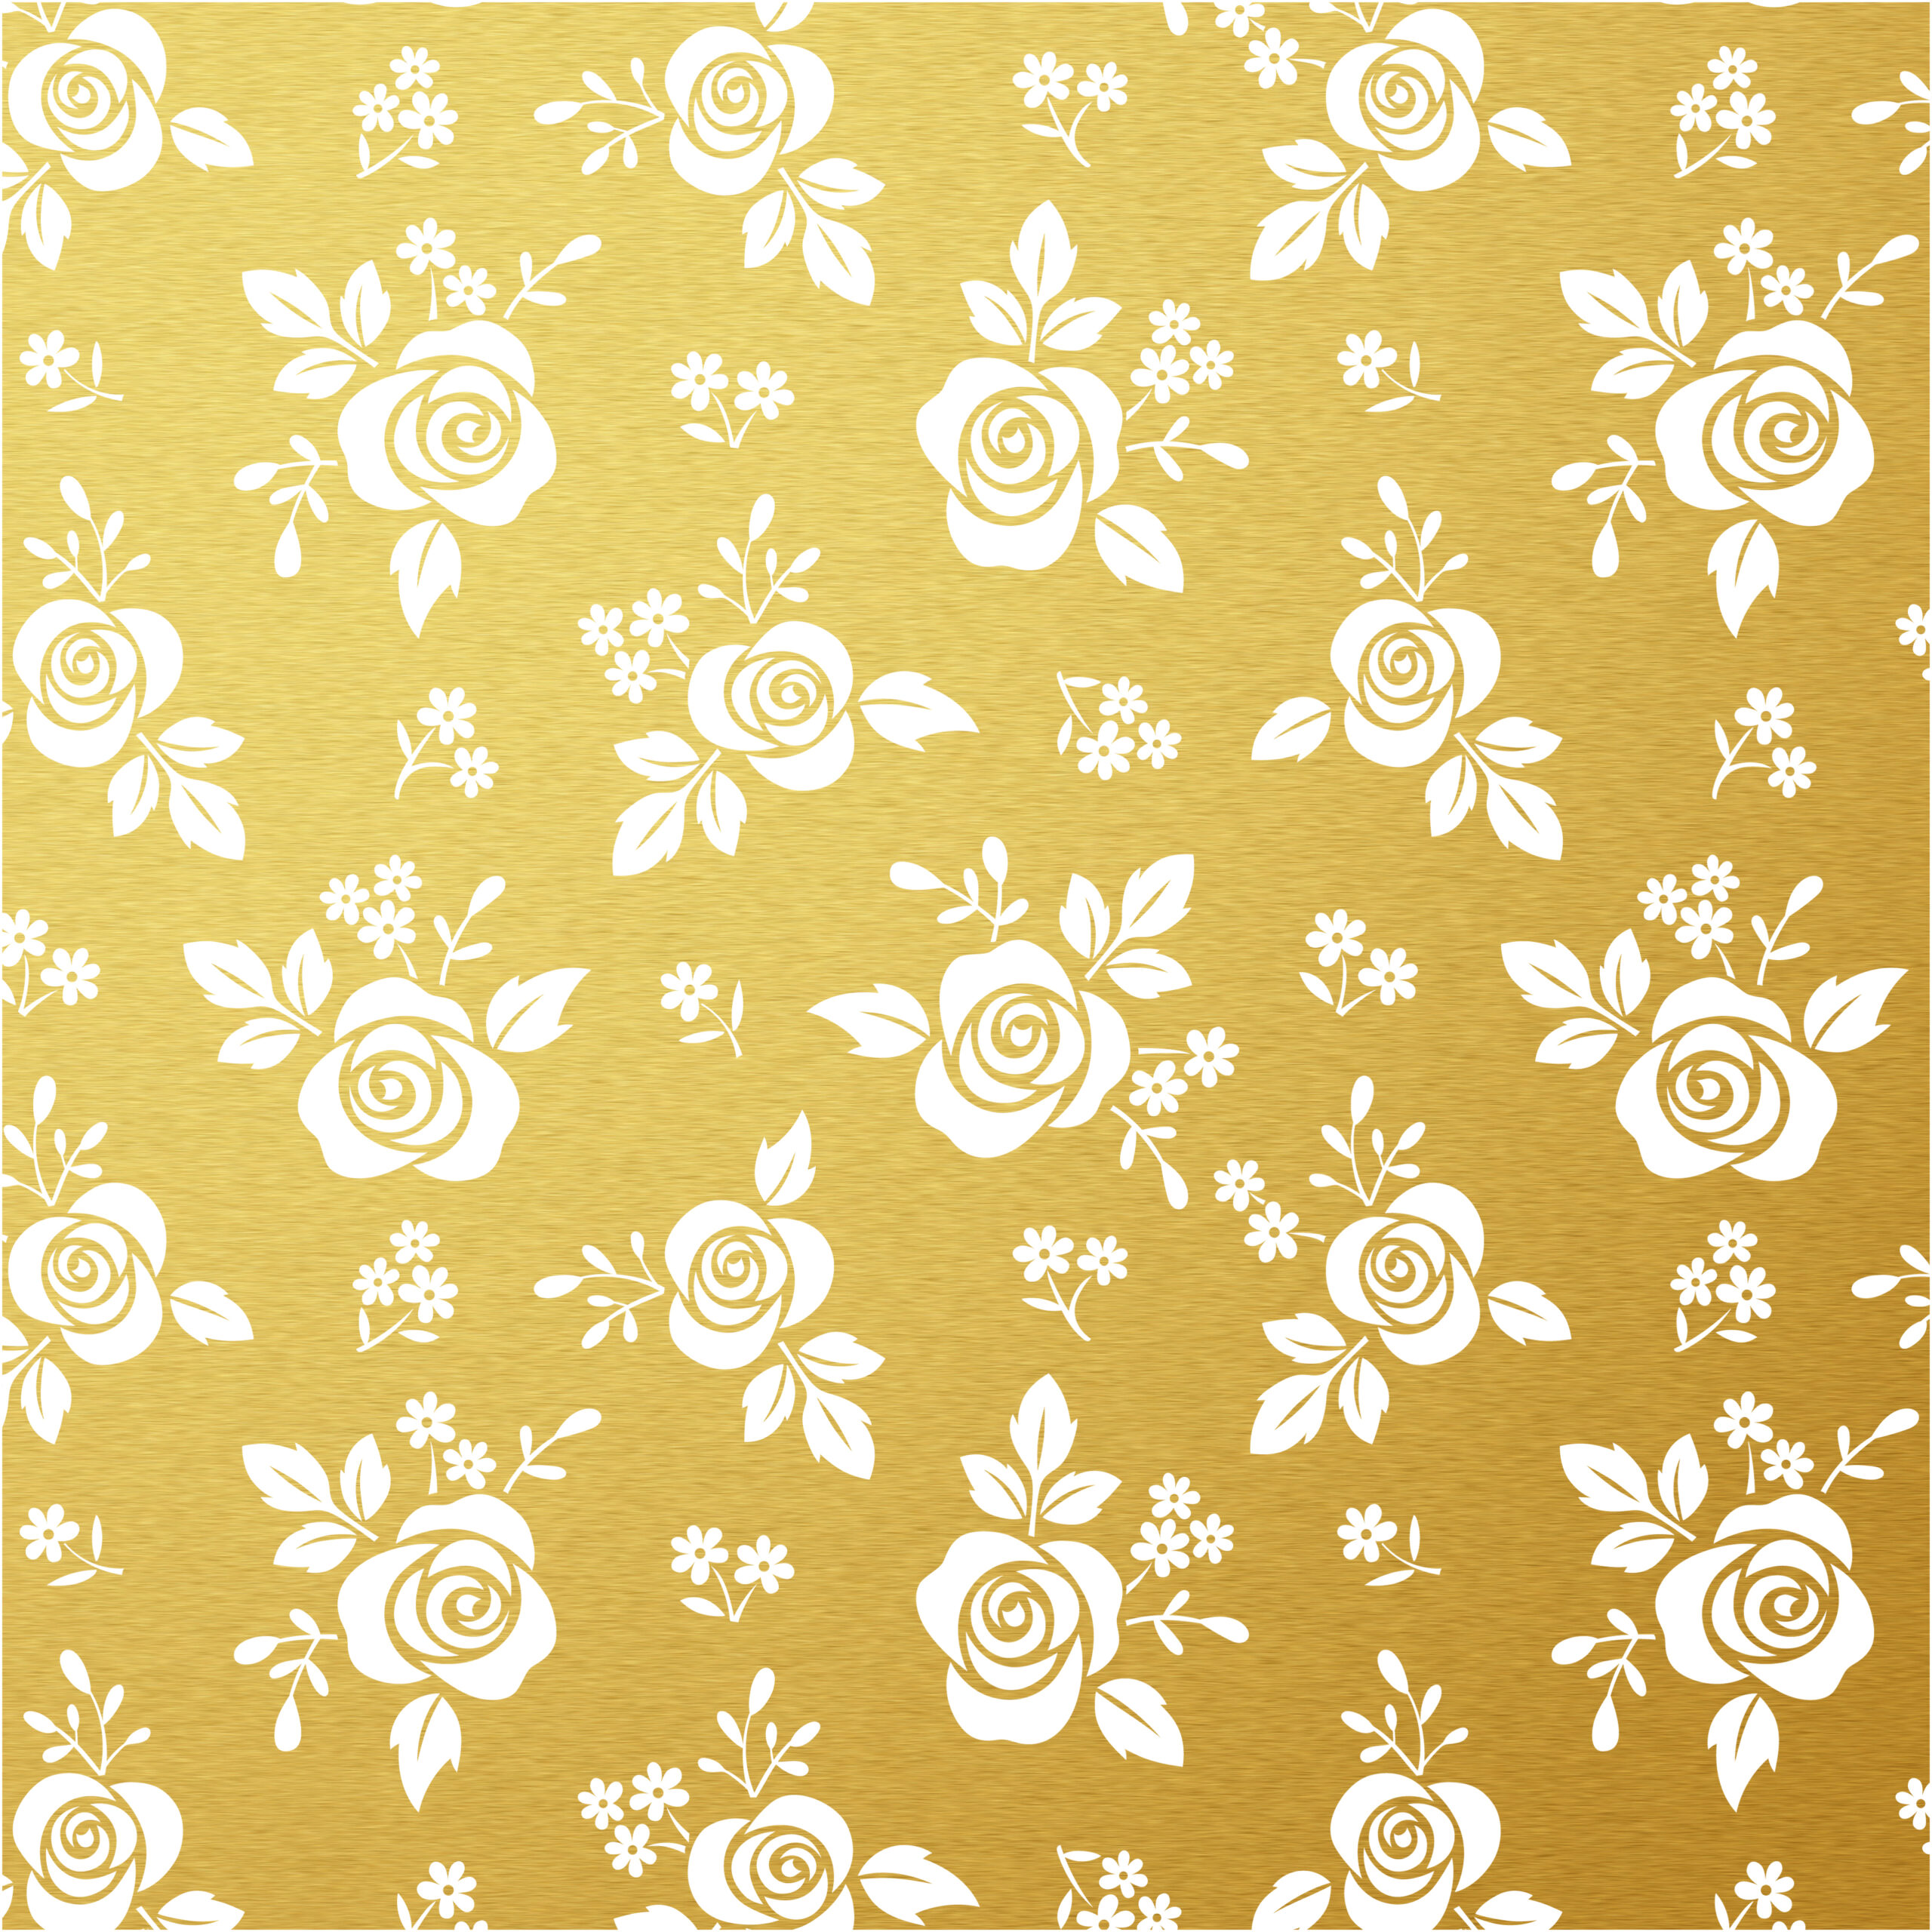 Scrapbook Paper Black White and Gold leaf Page 5 of 7 Free